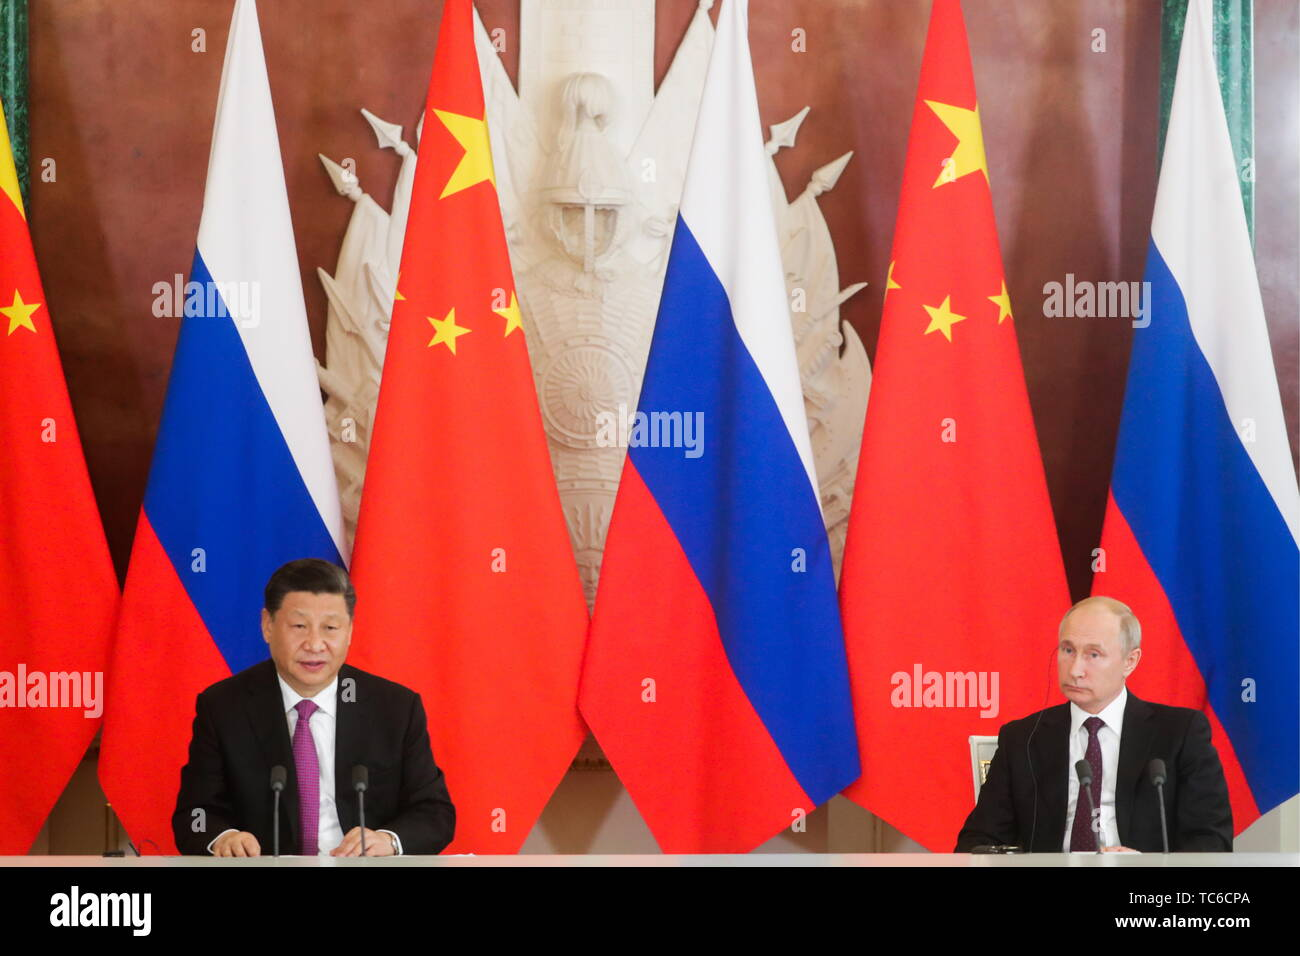 Moscow, Russia. 05th June, 2019. MOSCOW, RUSSIA - JUNE 5, 2019: China's President Xi Jinping (L) and Russia's President Vladimir Putin at a ceremony to sign joint documents following Russian-Chinese talks at the Moscow Kremlin. Mikhail Metzel/TASS Credit: ITAR-TASS News Agency/Alamy Live News - Stock Image